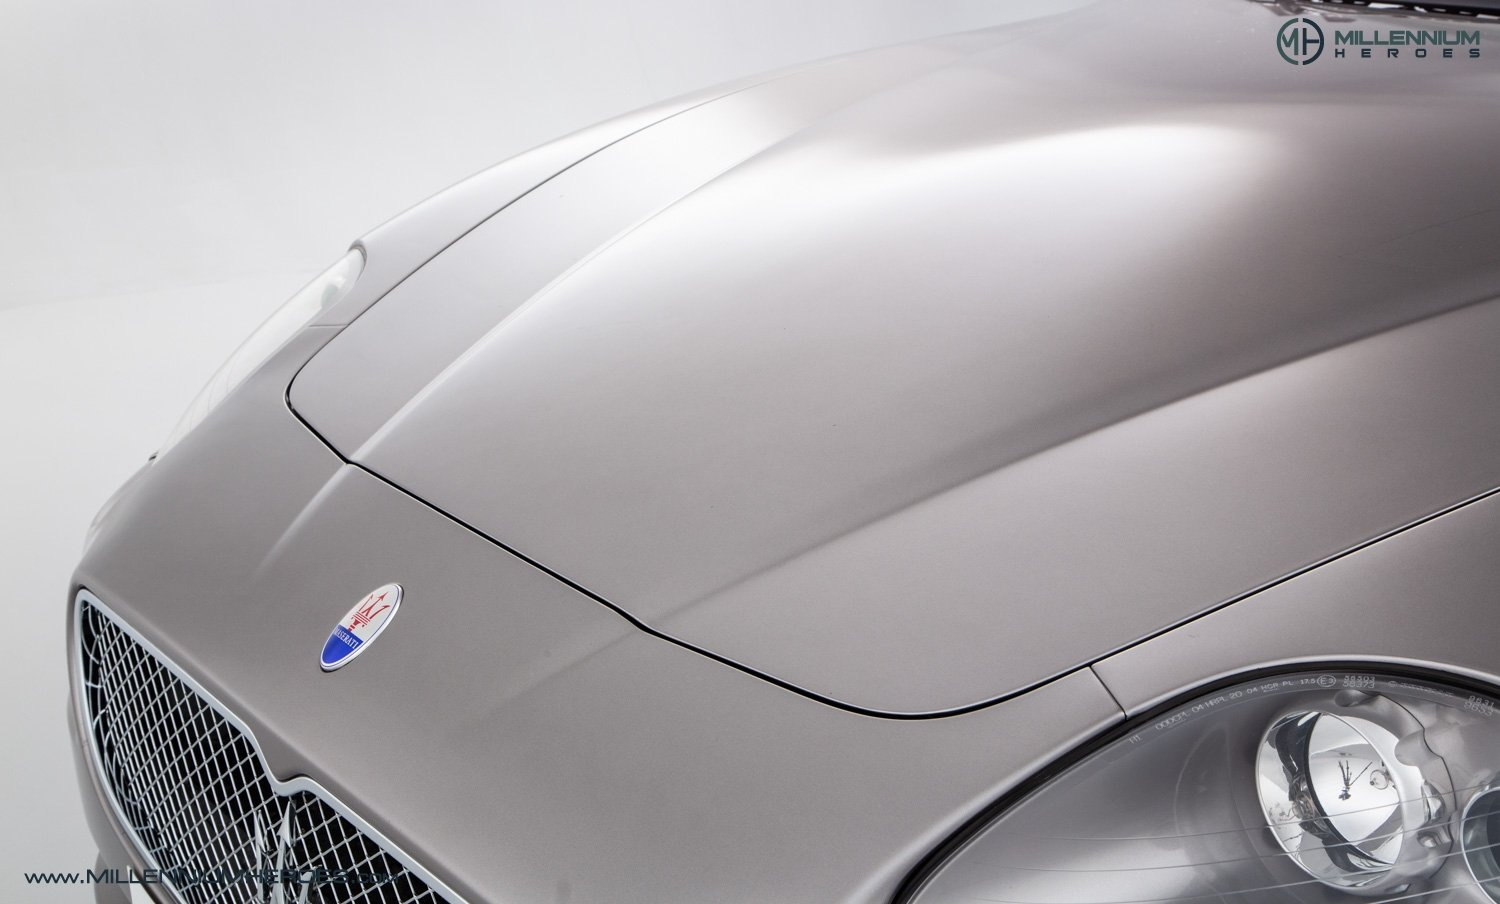 2006 MASERATI COUPE V8 GRANSPORT LE // 44K MILES //  1 OF 107 For Sale (picture 2 of 22)